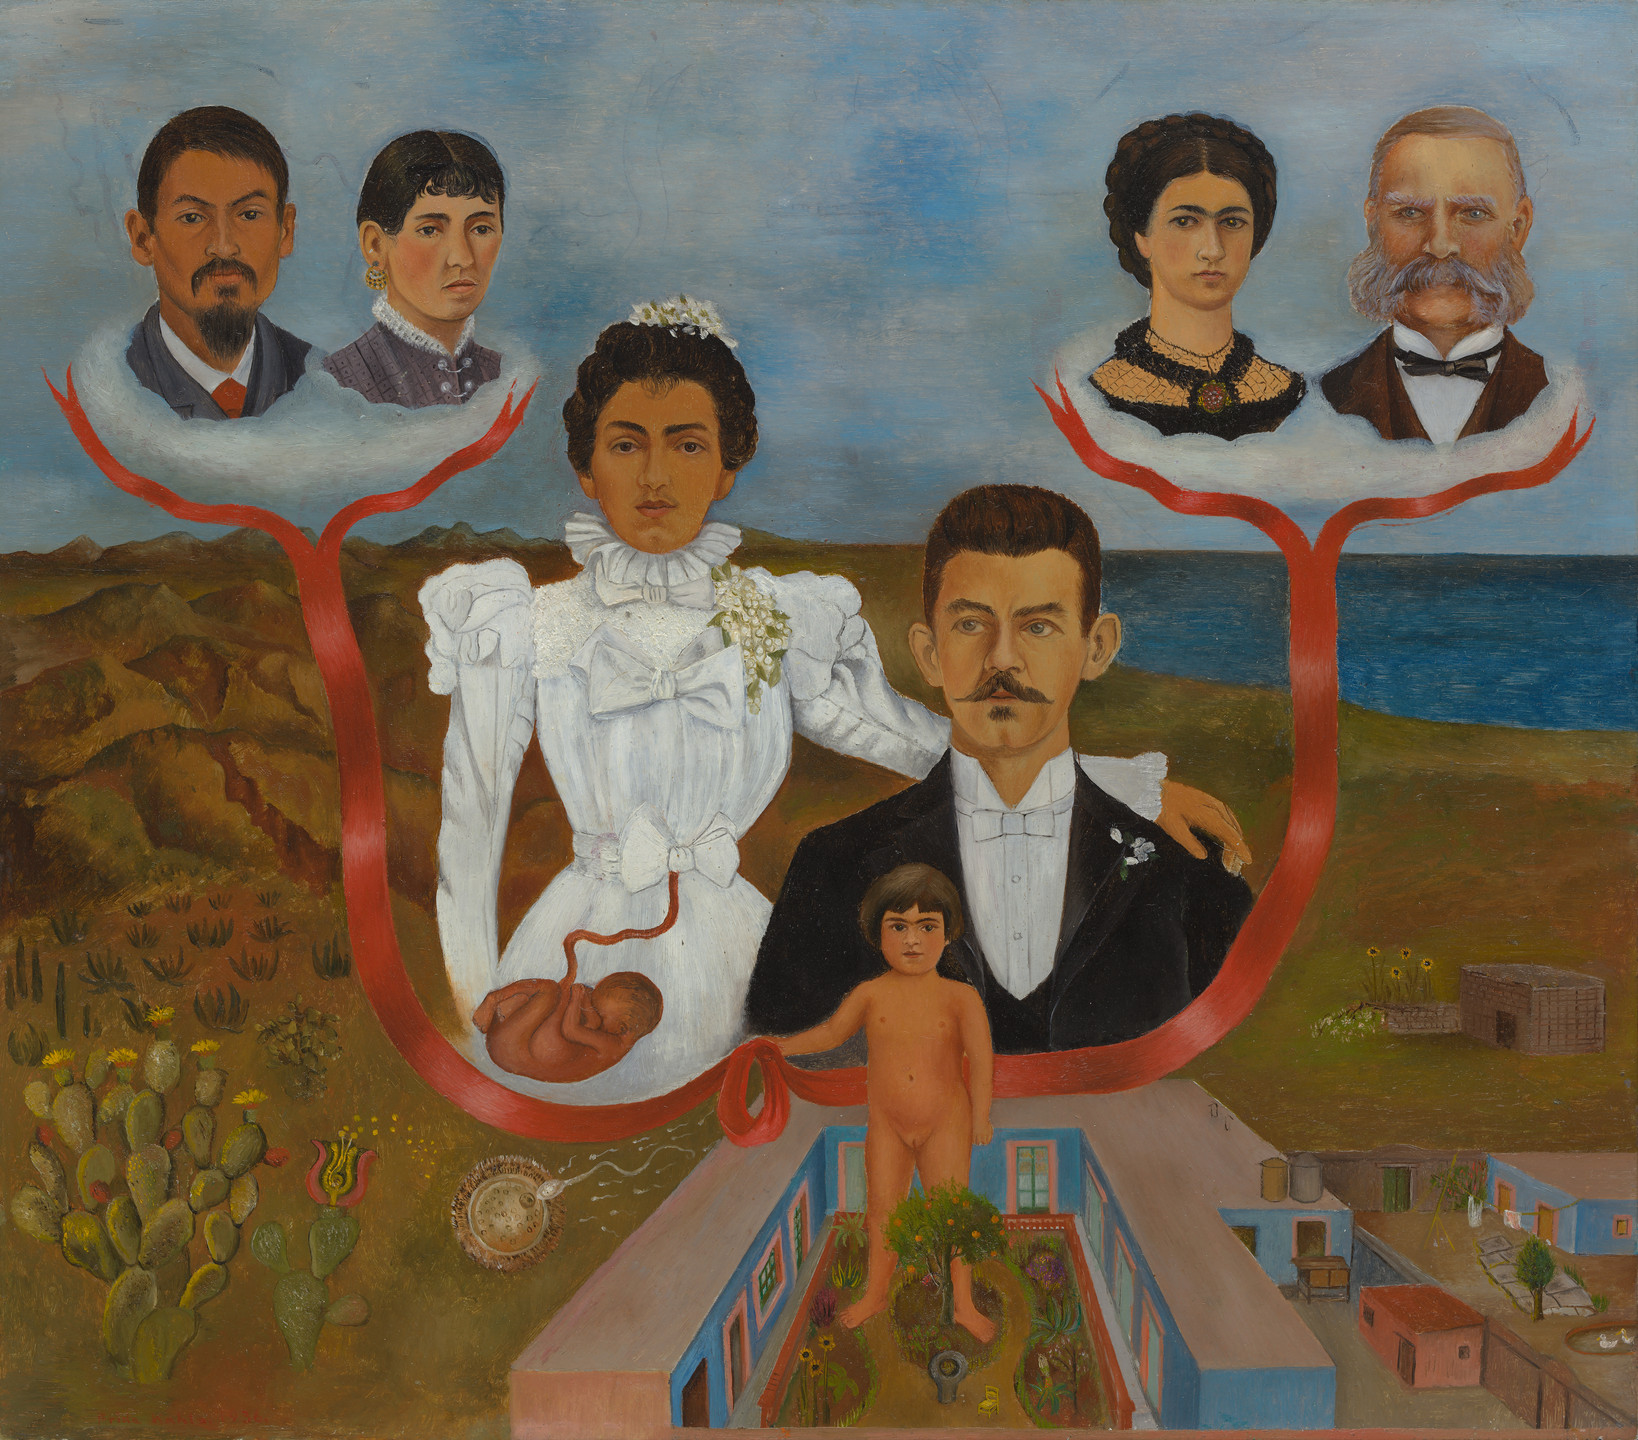 Frida Kahlo. My Grandparents, My Parents, and I (Family Tree). 1936